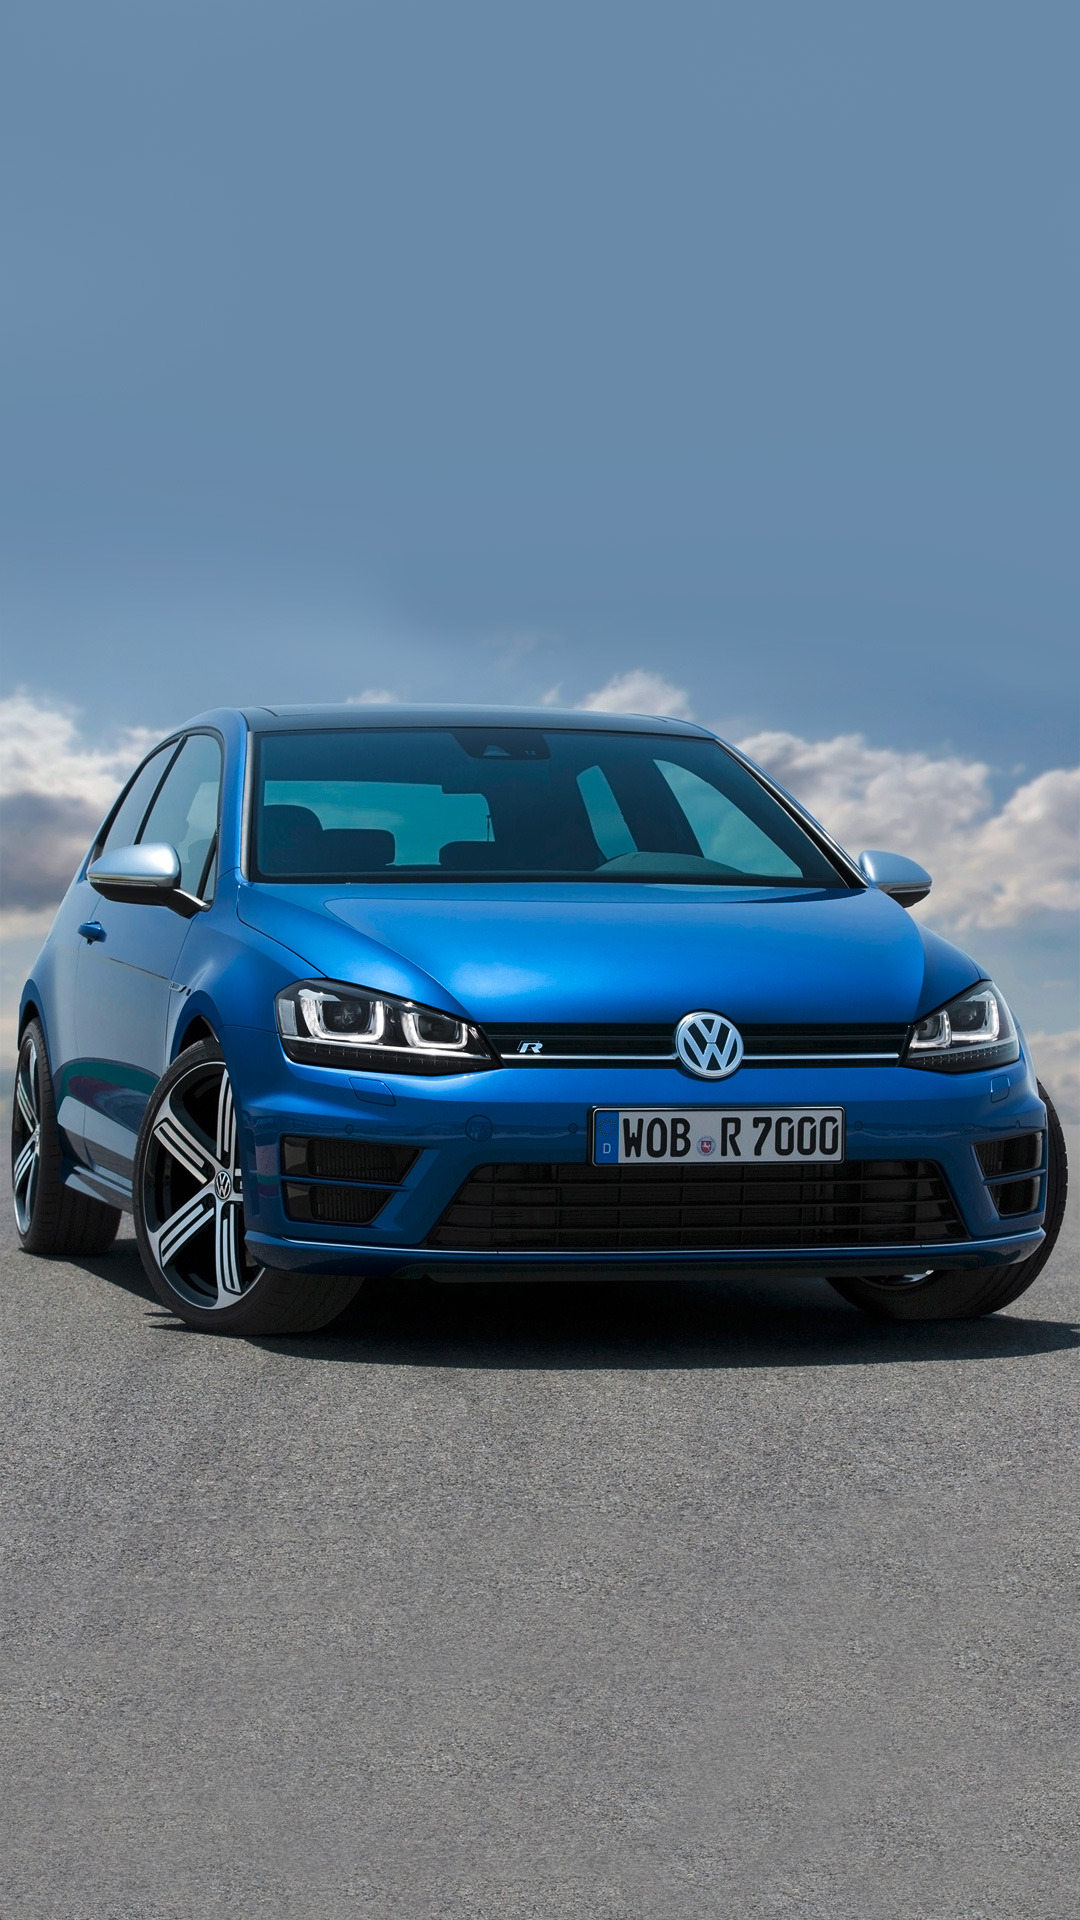 Volkswagen Golf 7 Best Htc One Wallpapers Free And Easy